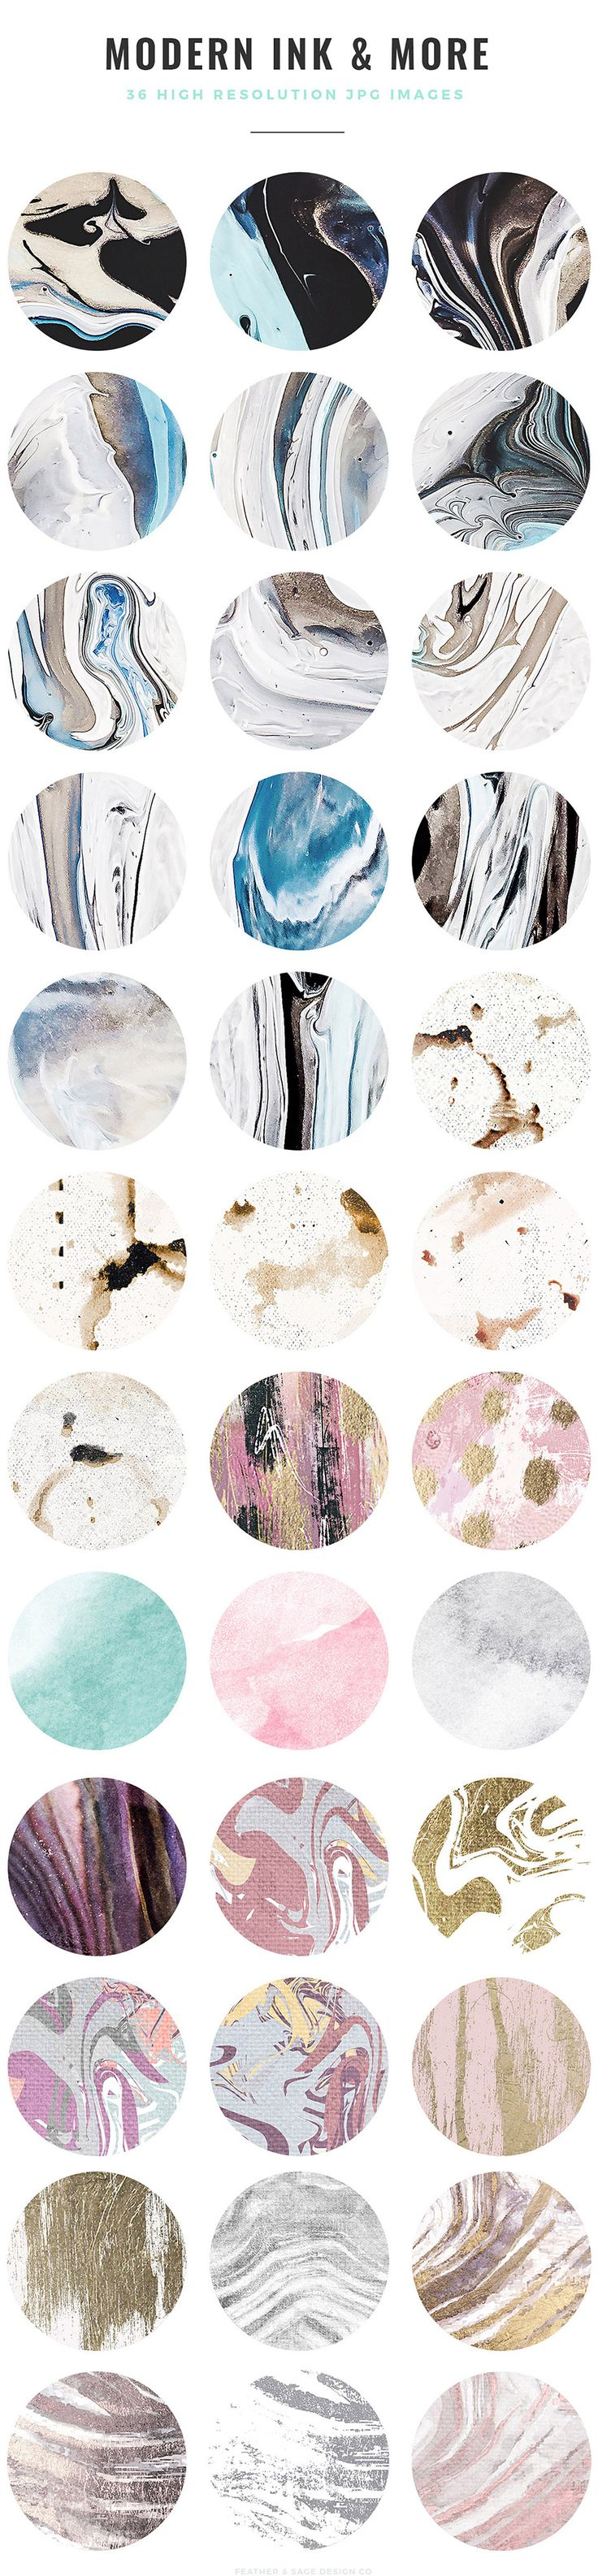 Bold And Unique Patterns To Make Your Work Stand Out If you love abstract patterns, this collection is for you! Made using mixed media including everything from watercolor, fluid acrylics, gouache paints, digital textures, and ink. Inspired by abstract paintings, agate rock banding patterns, coffee stains, wood grain, grunge textures, and perfectly imperfect hand drawn ... read more